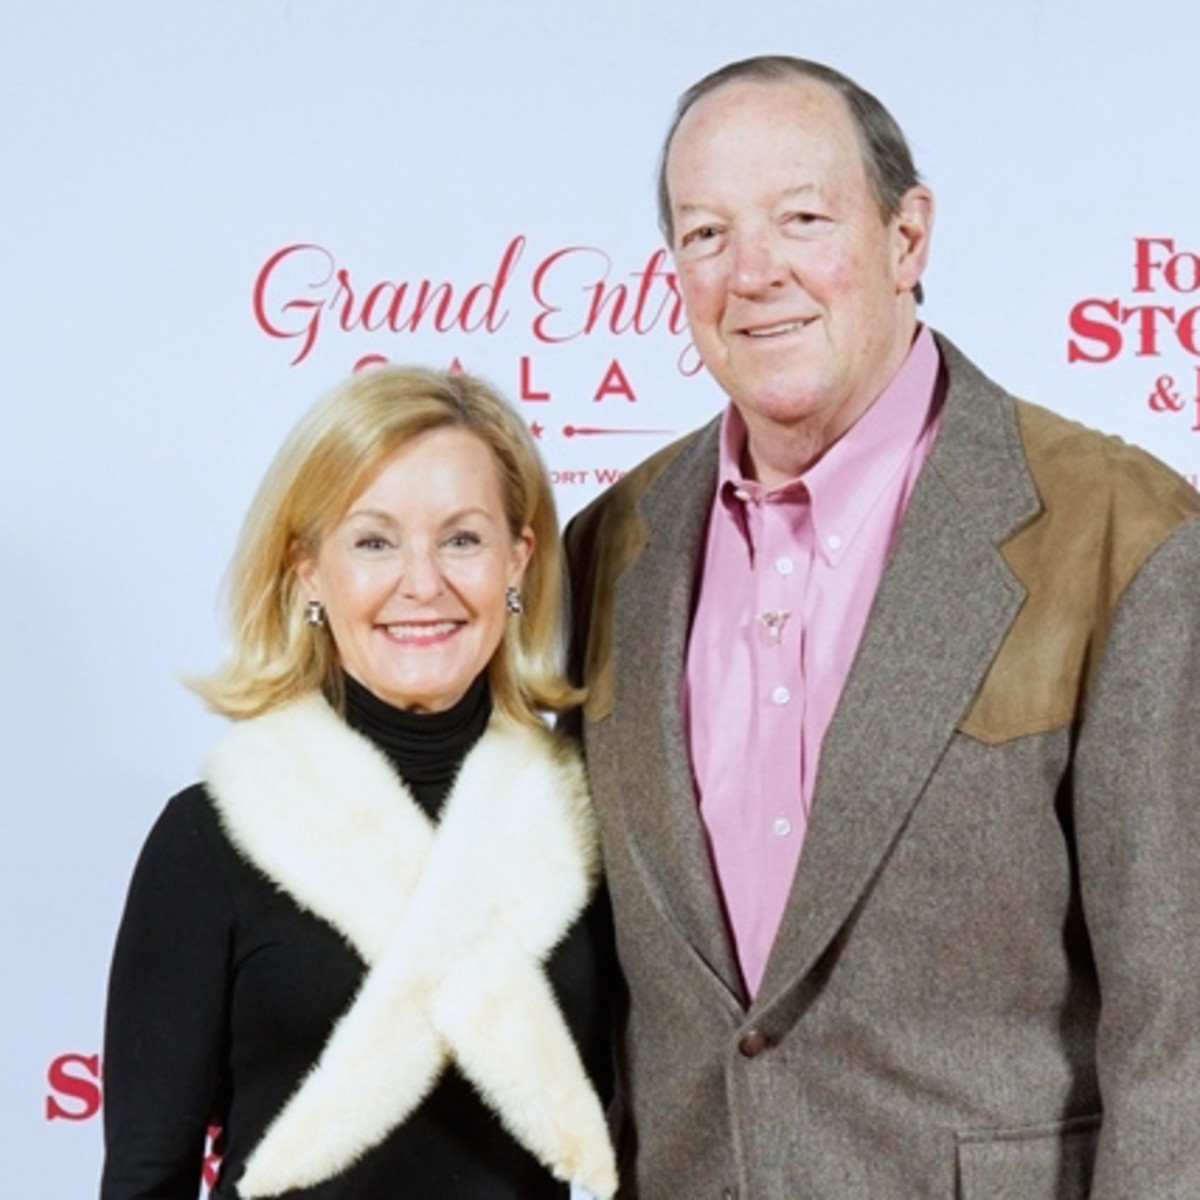 Fort Worth, JLH Grand Entry Gala, January 2018, Gail Landreth, Bill Landreth